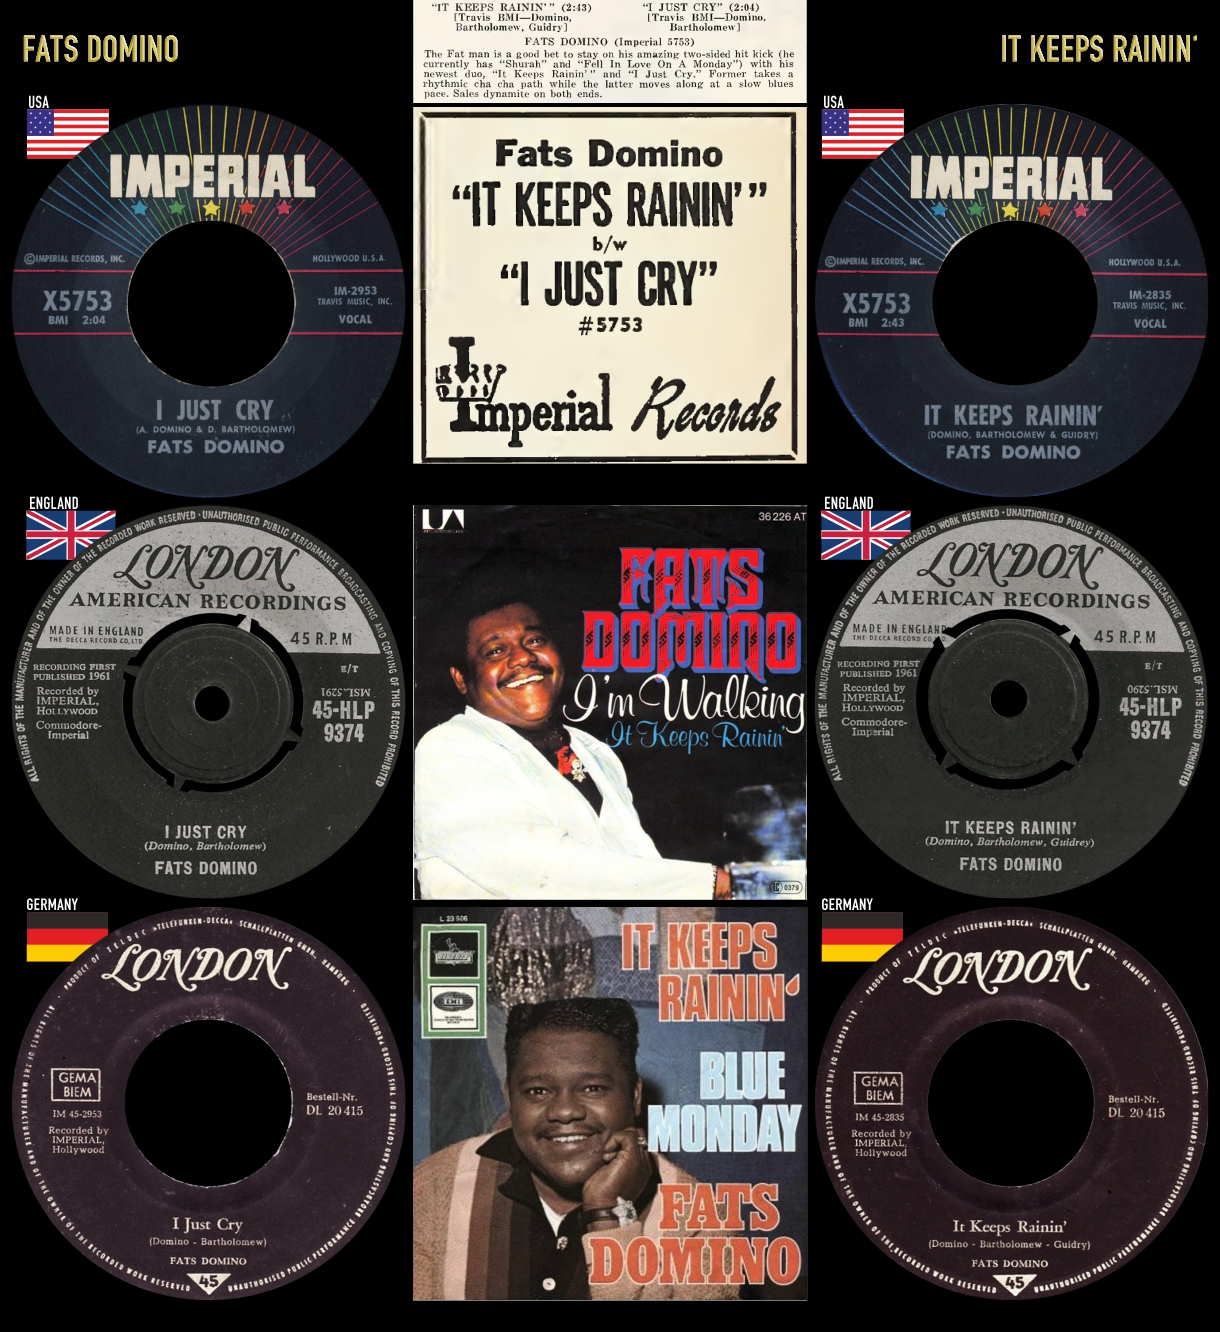 610513_Fats Domino_It Keeps Rainin'